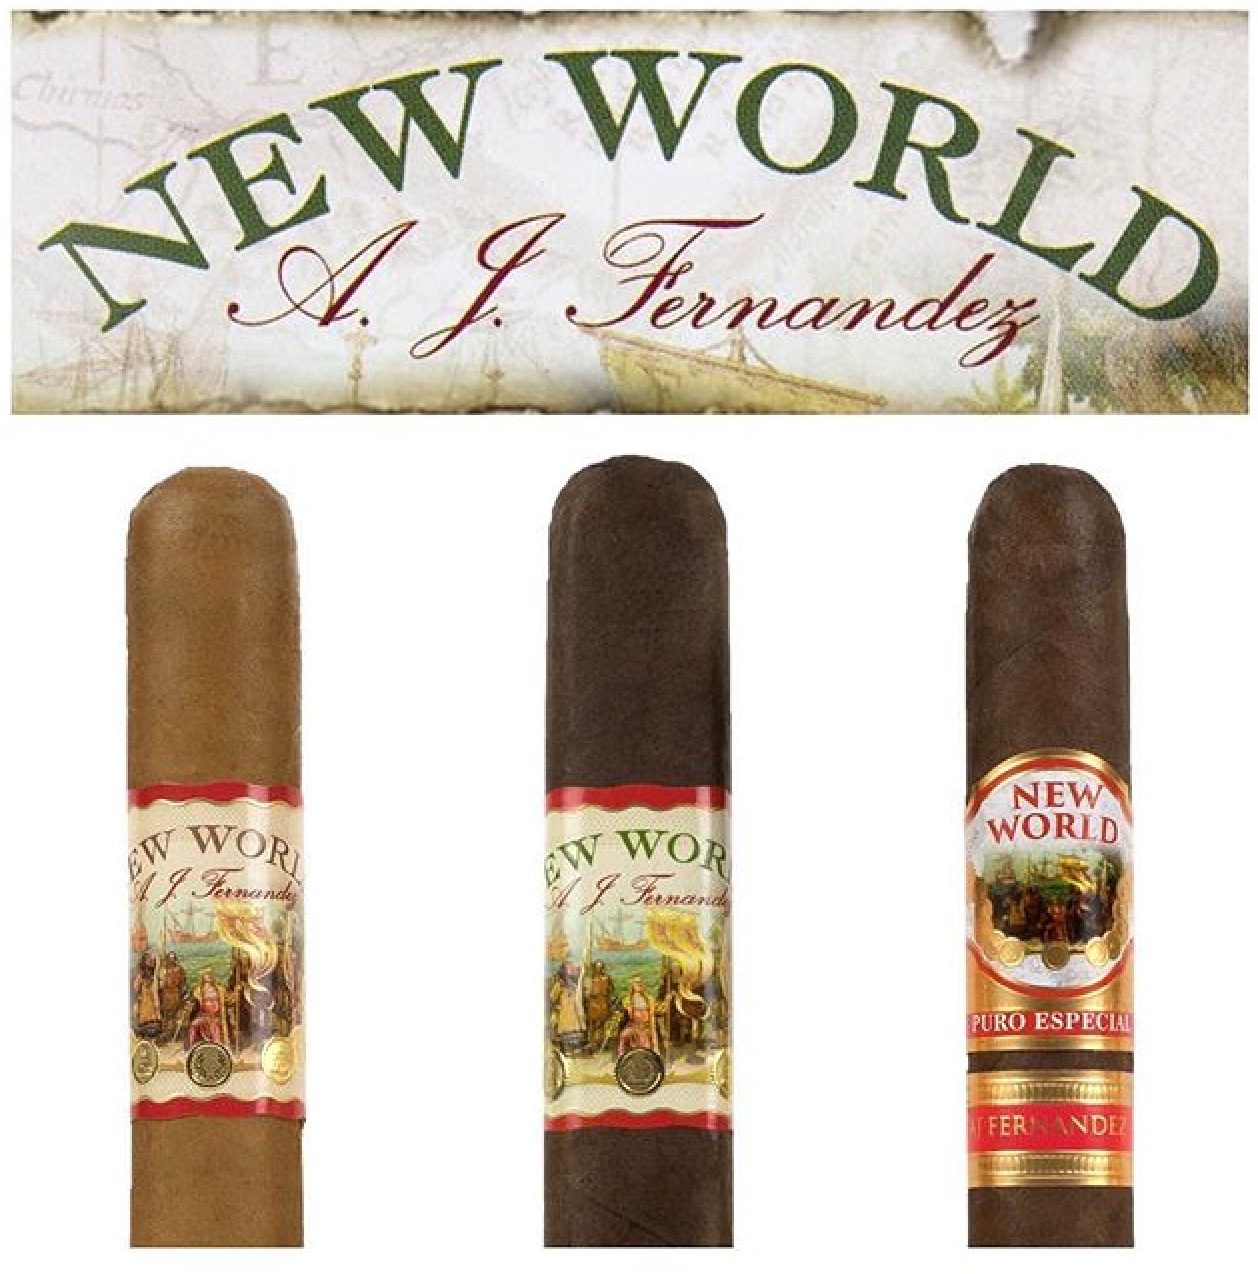 New World by AJ Fernandez Gobernator Toro - Box of 21 - Cigar Journal #1 Cigar of 2014 image